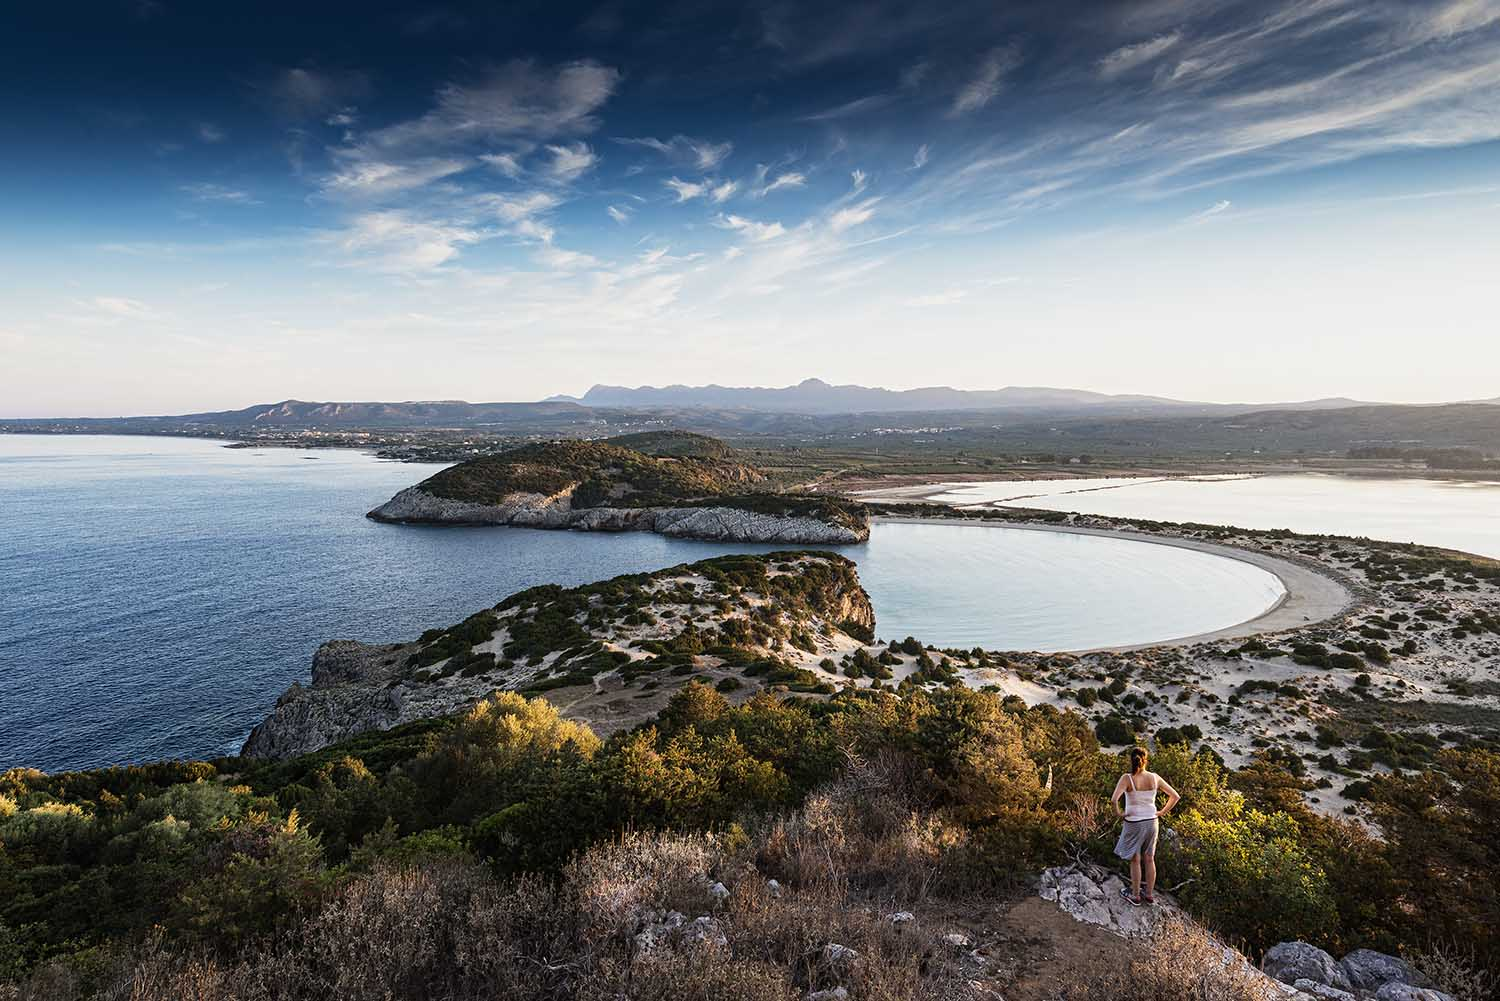 Story: Greece at its best, Peloponnese